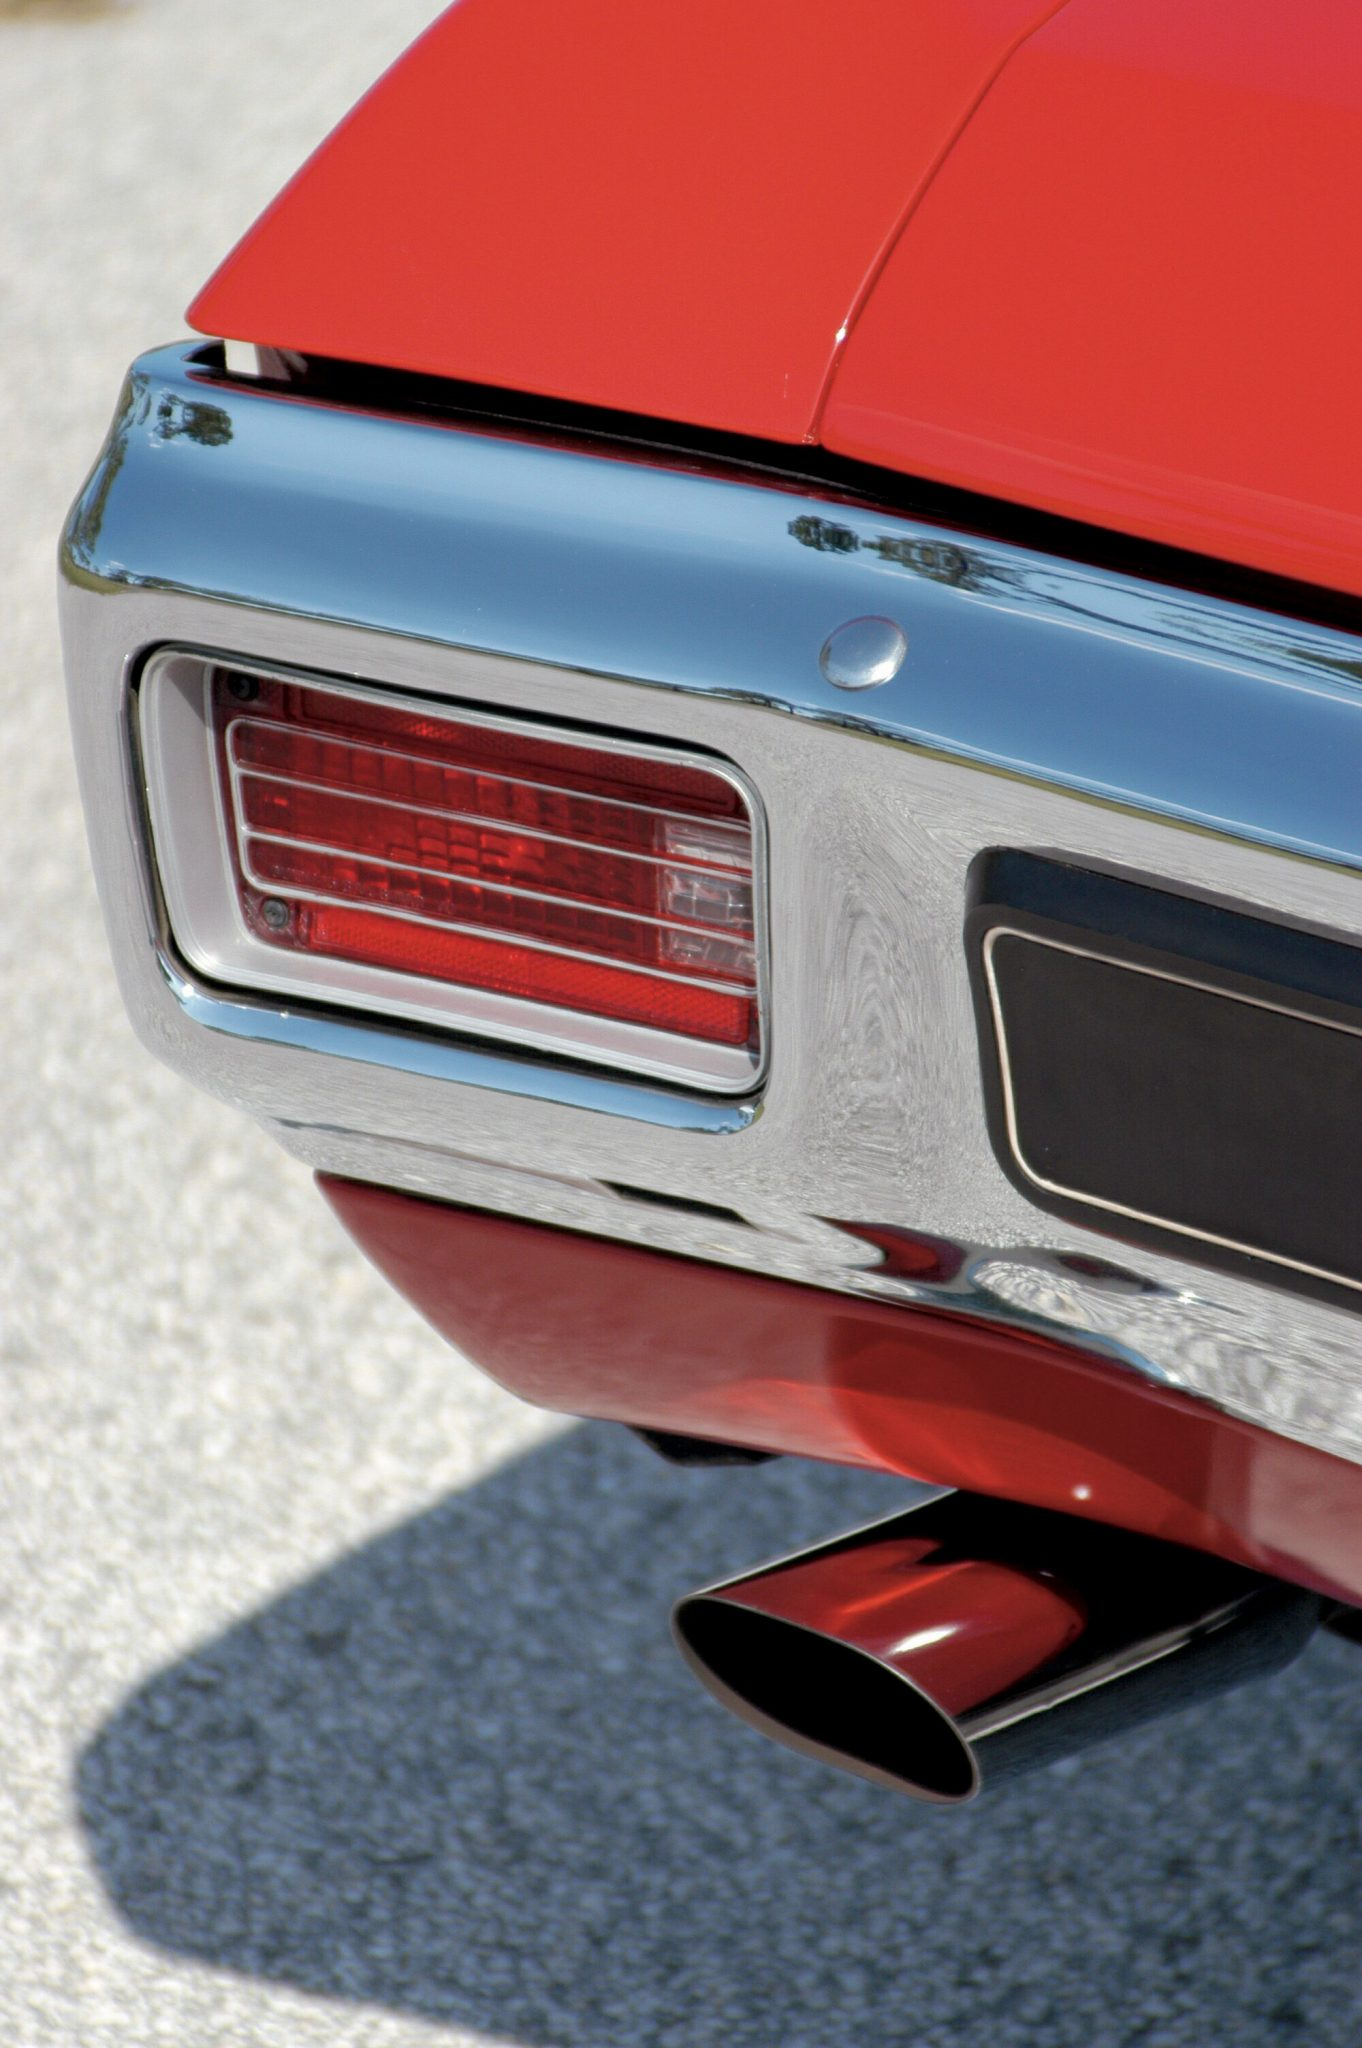 1970 El Camino Led Tail Lights The Ultimate Muscle Car The 1970 Ls6 Chevelle Was America S King